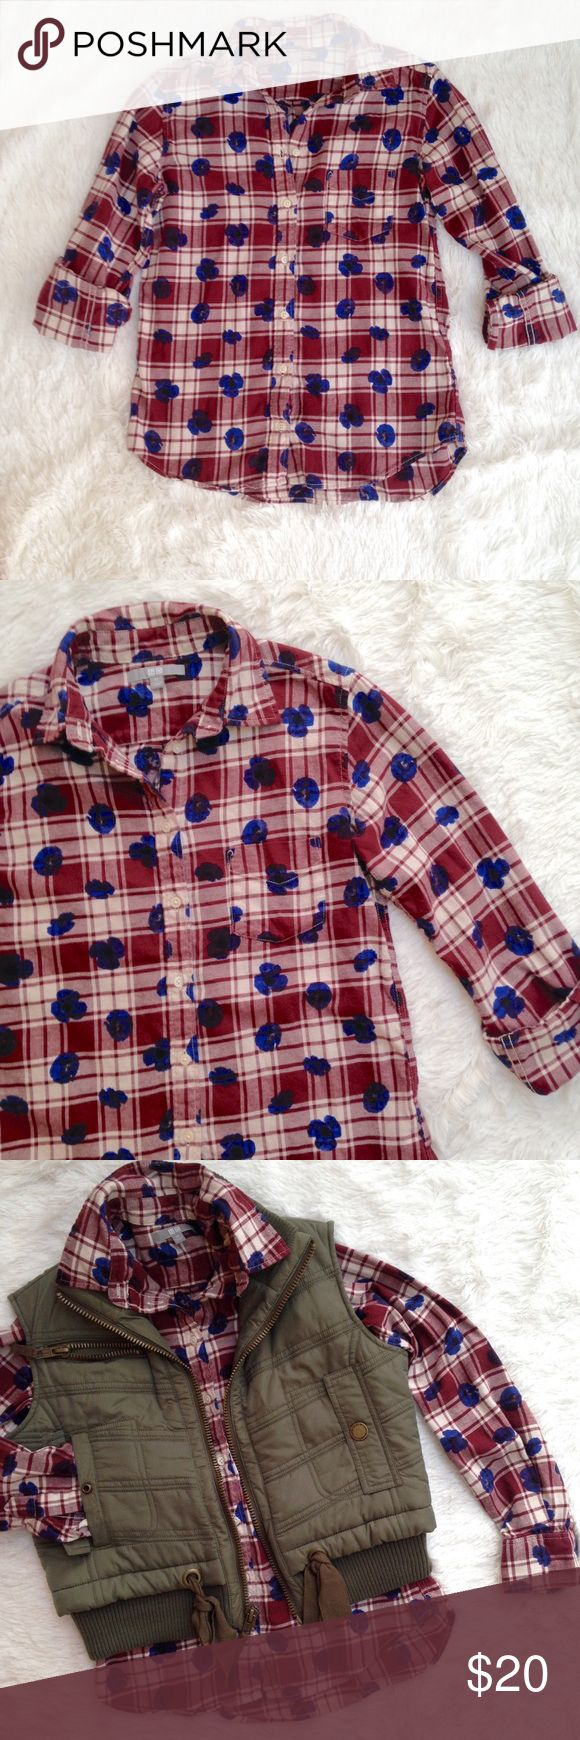 "Uniqlo Plaid Peony Flannel Long Sleeve Shirt Uniqlo Plaid Peony Flannel Button Up Oxford Shirt. Cuffed sleeves for design. Deep red/blue/white. 100% cotton. Gently used condition with no flaws. Measurements: Length 24"", Bust 18"". Uniqlo Tops Button Down Shirts"